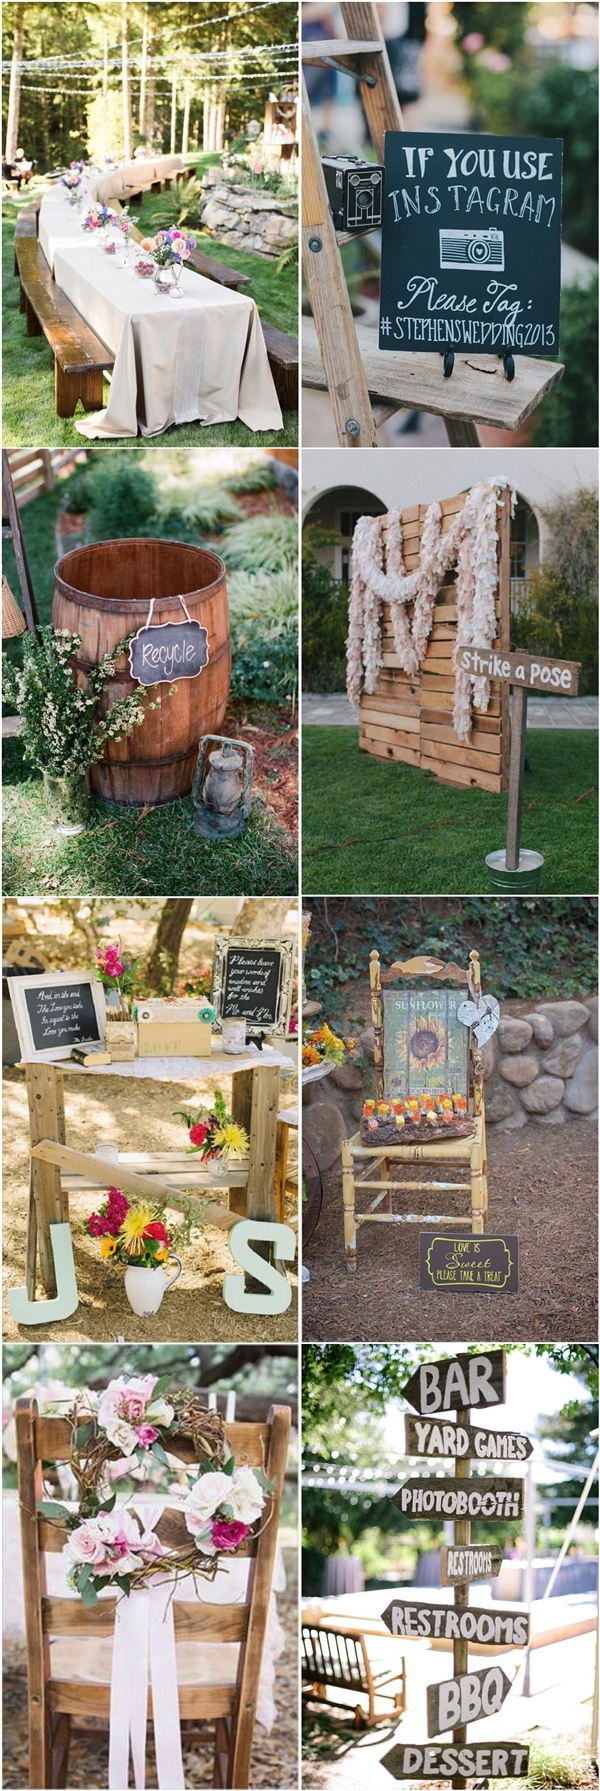 35 Rustic Backyard Wedding Decoration Ideas Deer Pearl Flowers inside 12 Clever Ideas How to Makeover Backyard Wedding Decorating Ideas